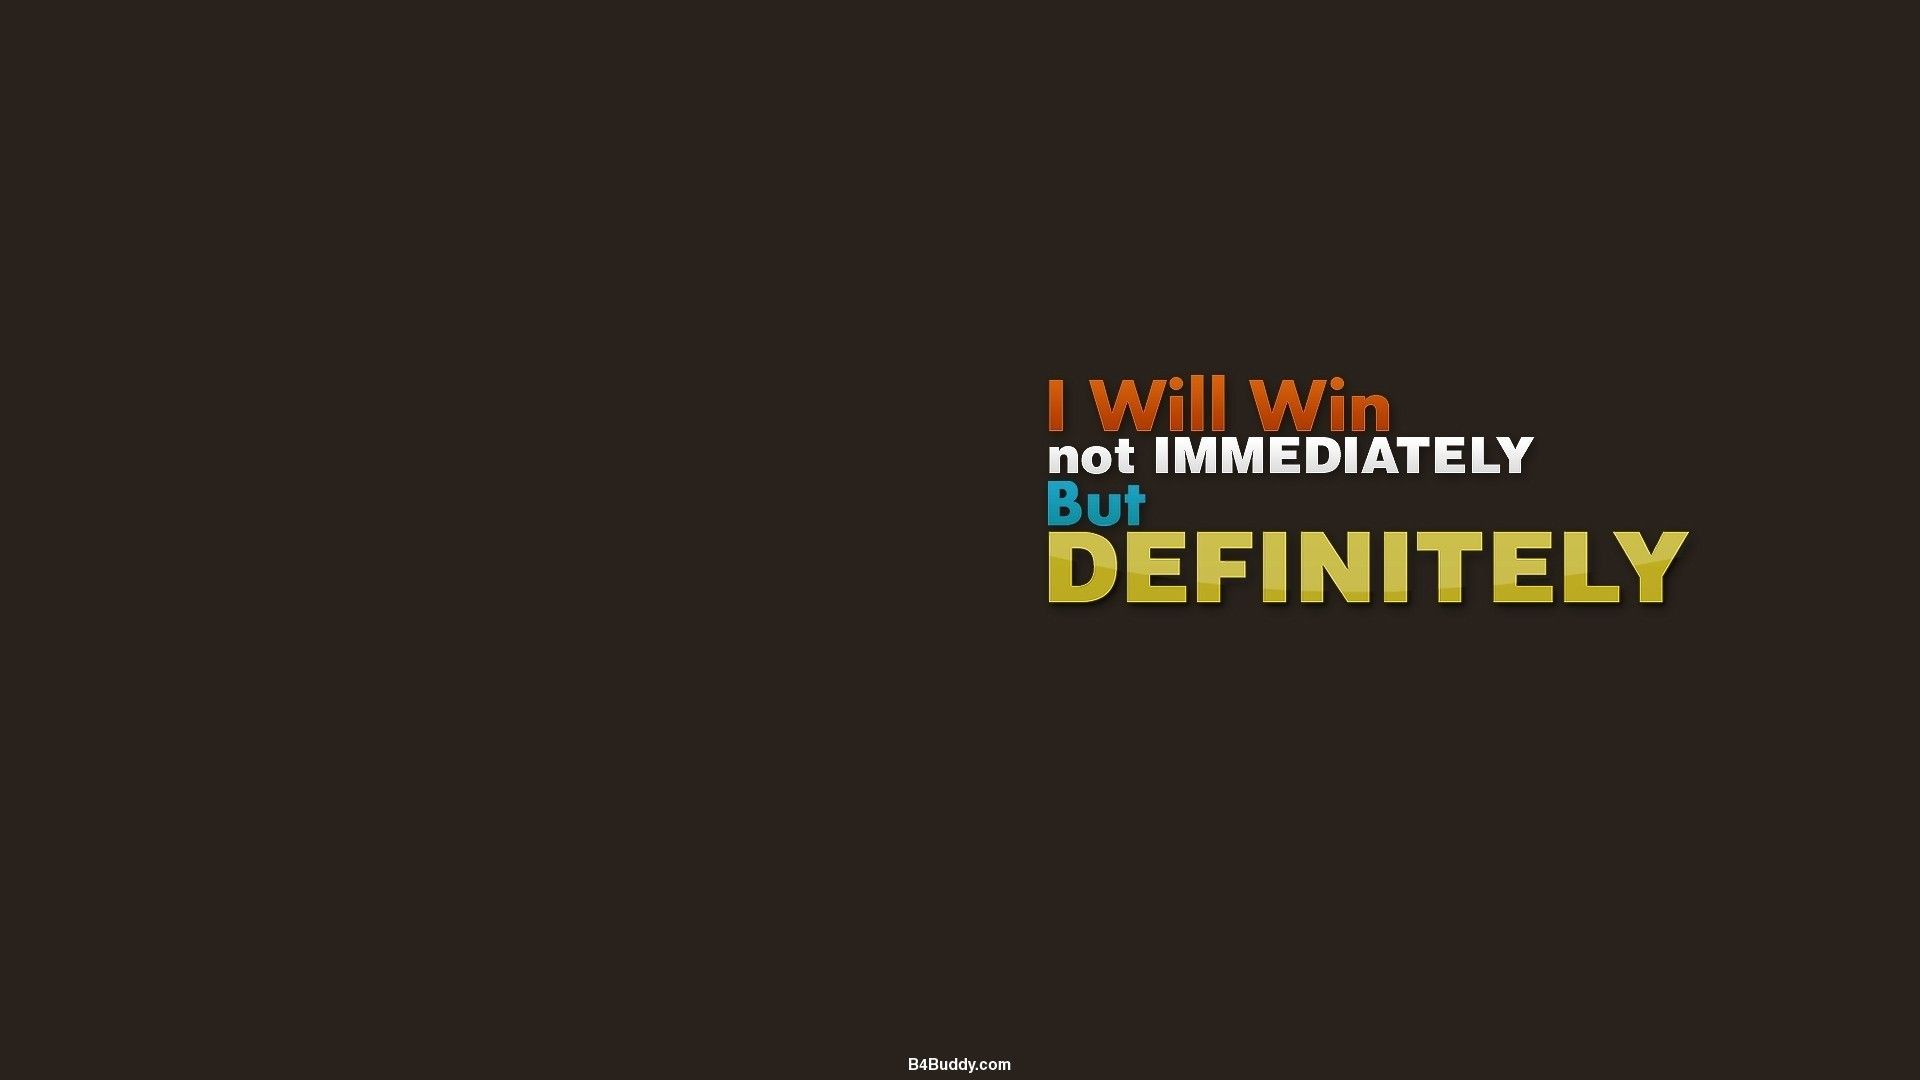 Hd Wallpaper For Desktop With Quotes